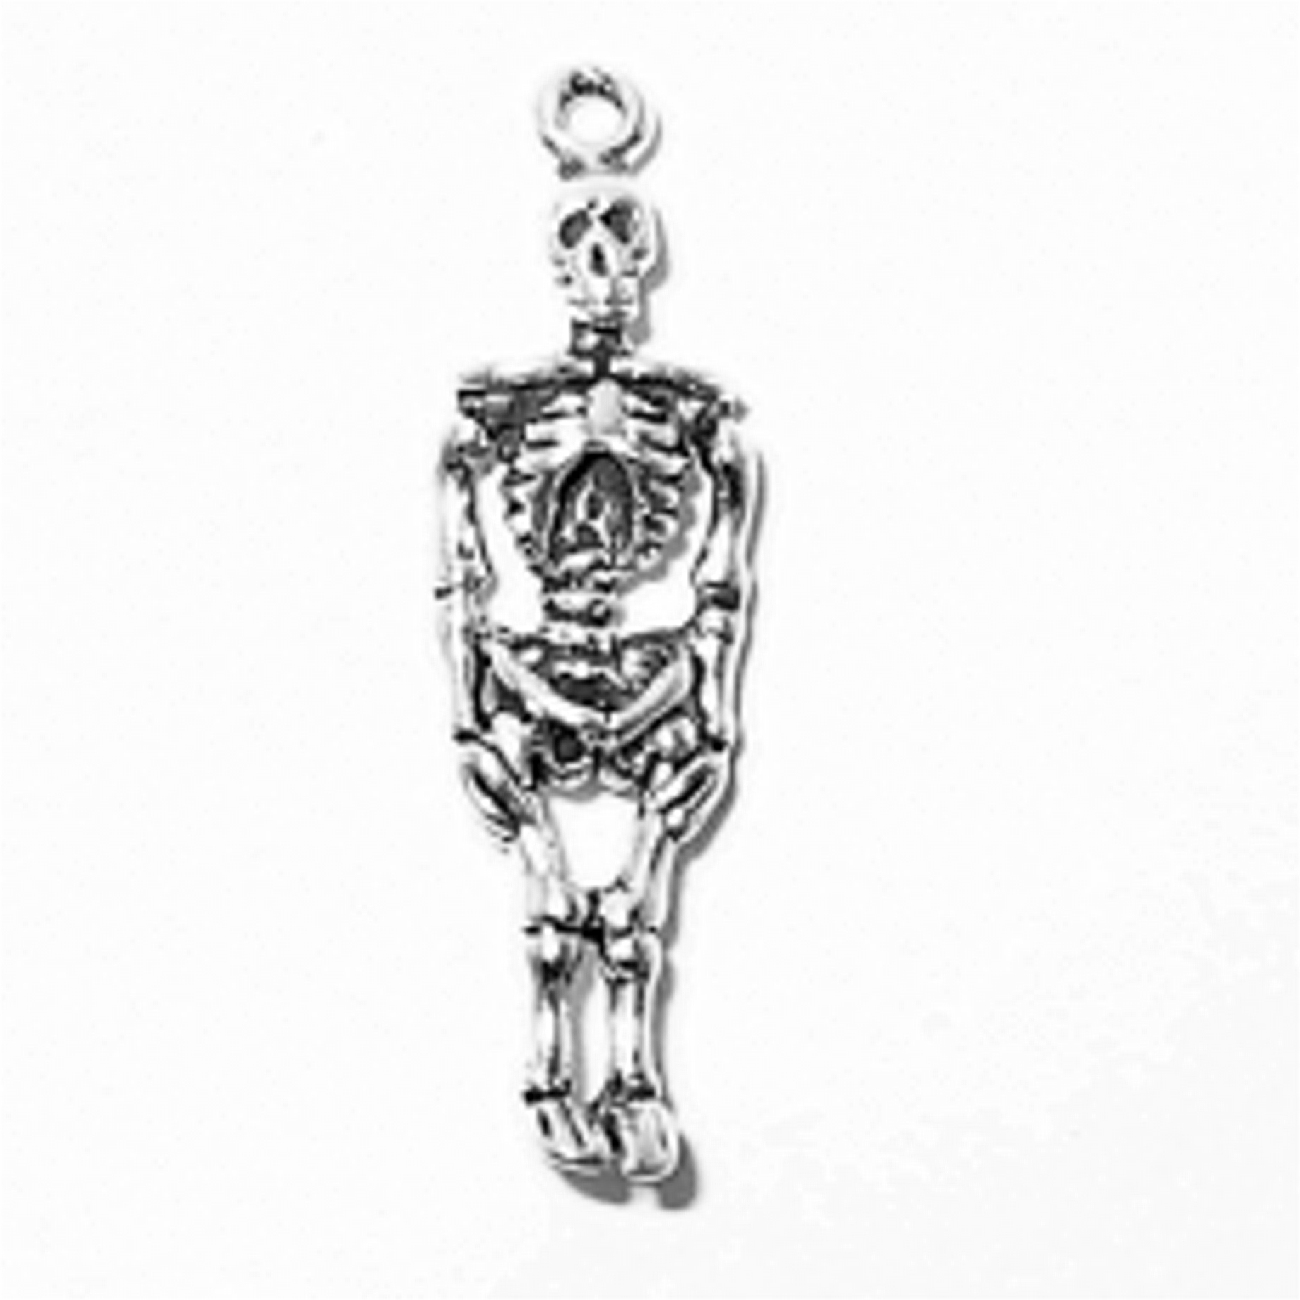 3D Full Body Human Skeleton Charm